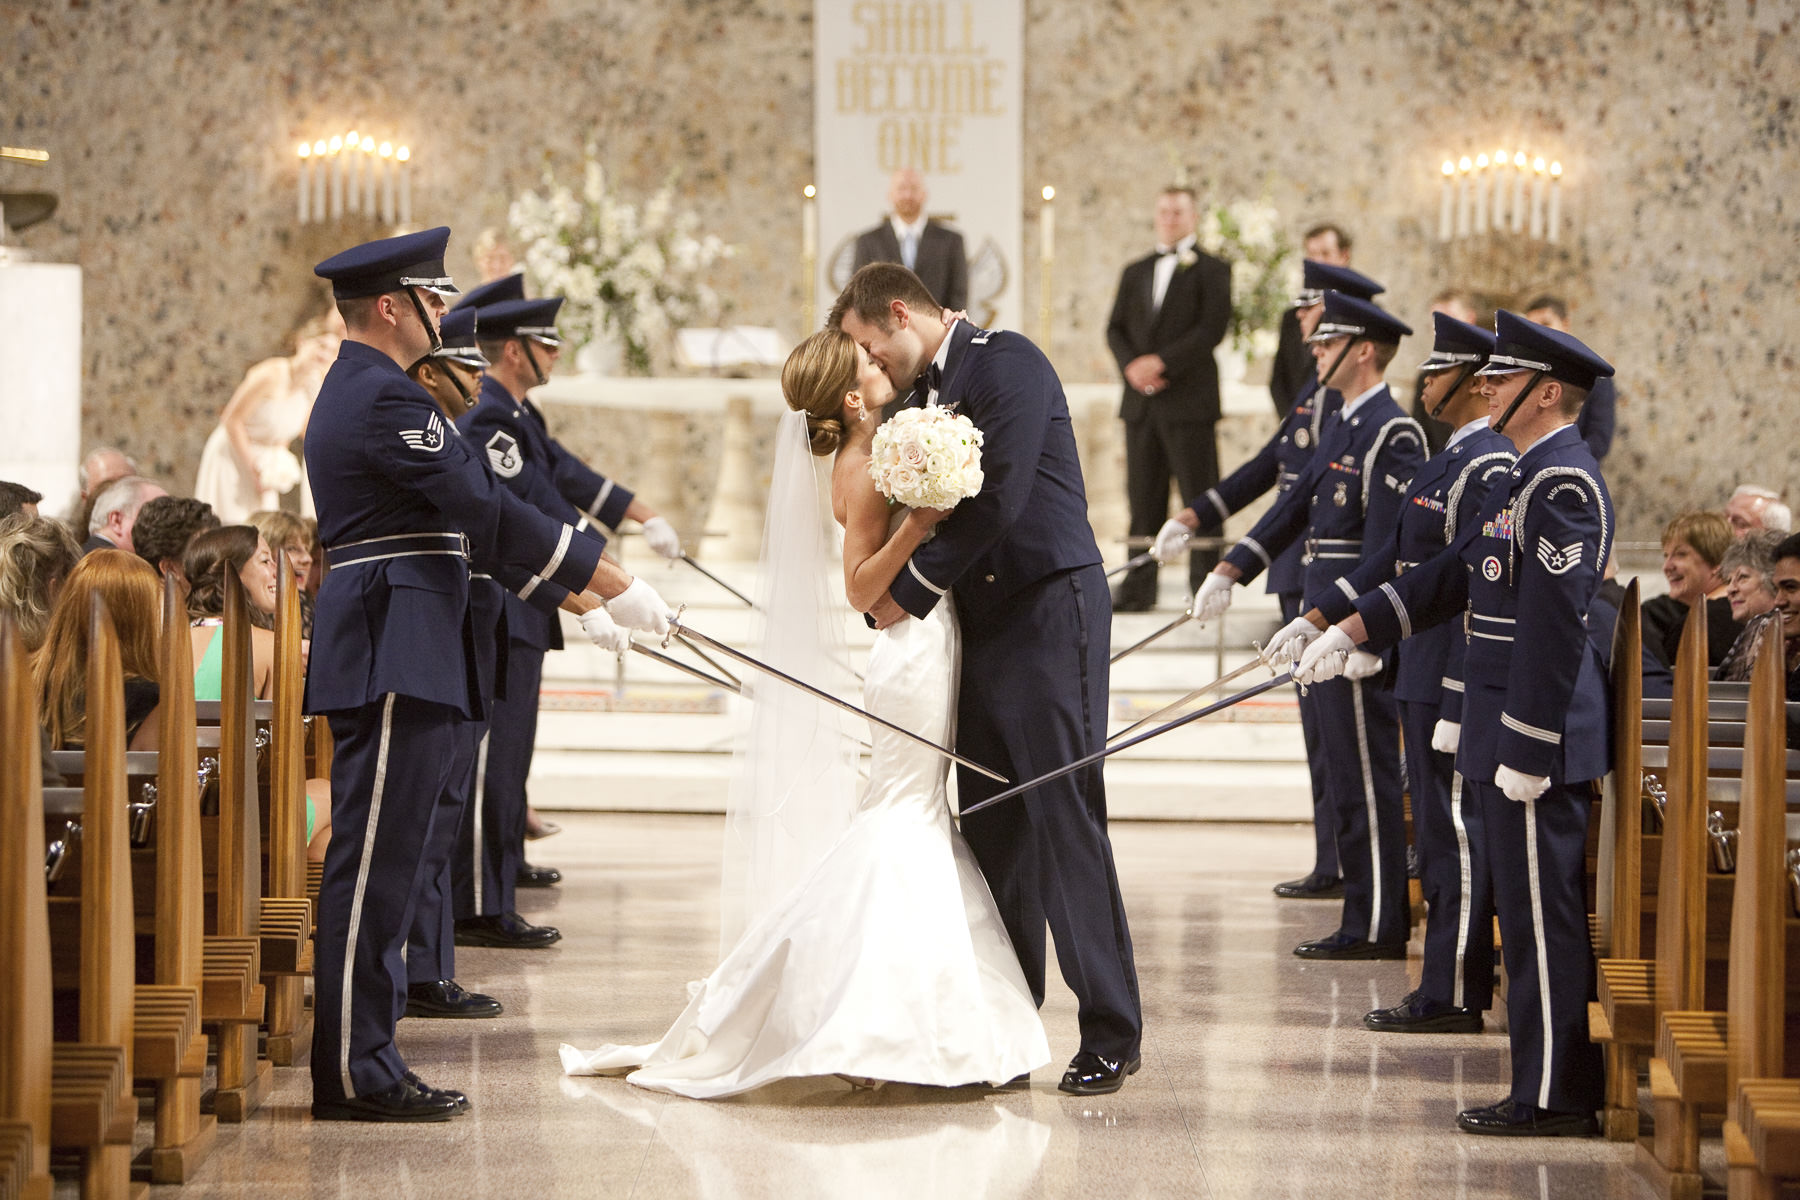 Bride and groom kiss at the saber arch during their wedding at the Air Force Academy Cadet Chapel.